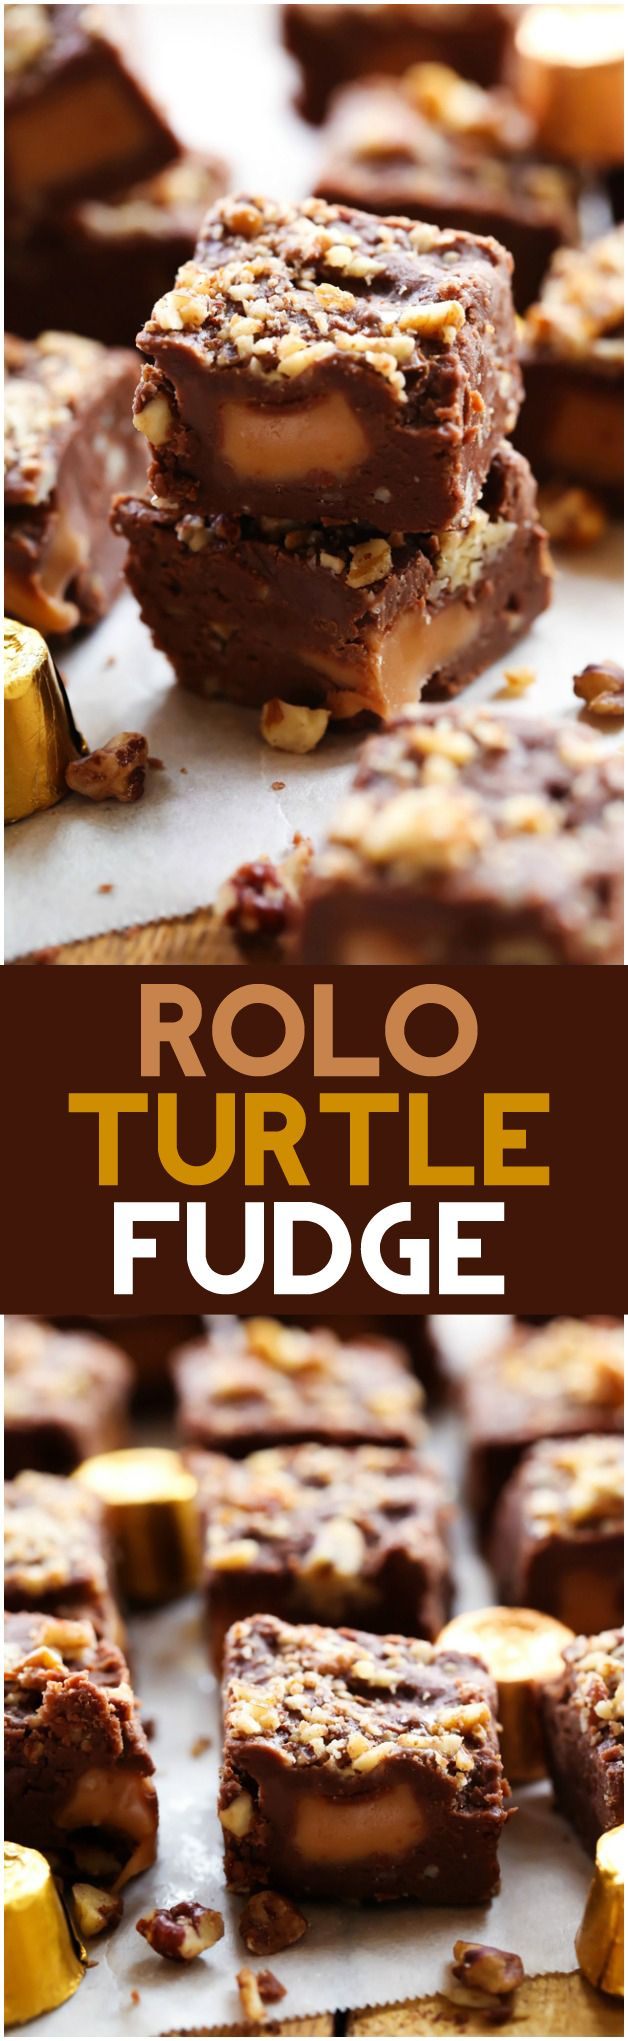 A delicious fudge featuring a creamy smooth chocolate fudge base, crunchy pecans stirred in and yummy ROLOS with gooey caramel filled centers in each and every piece.